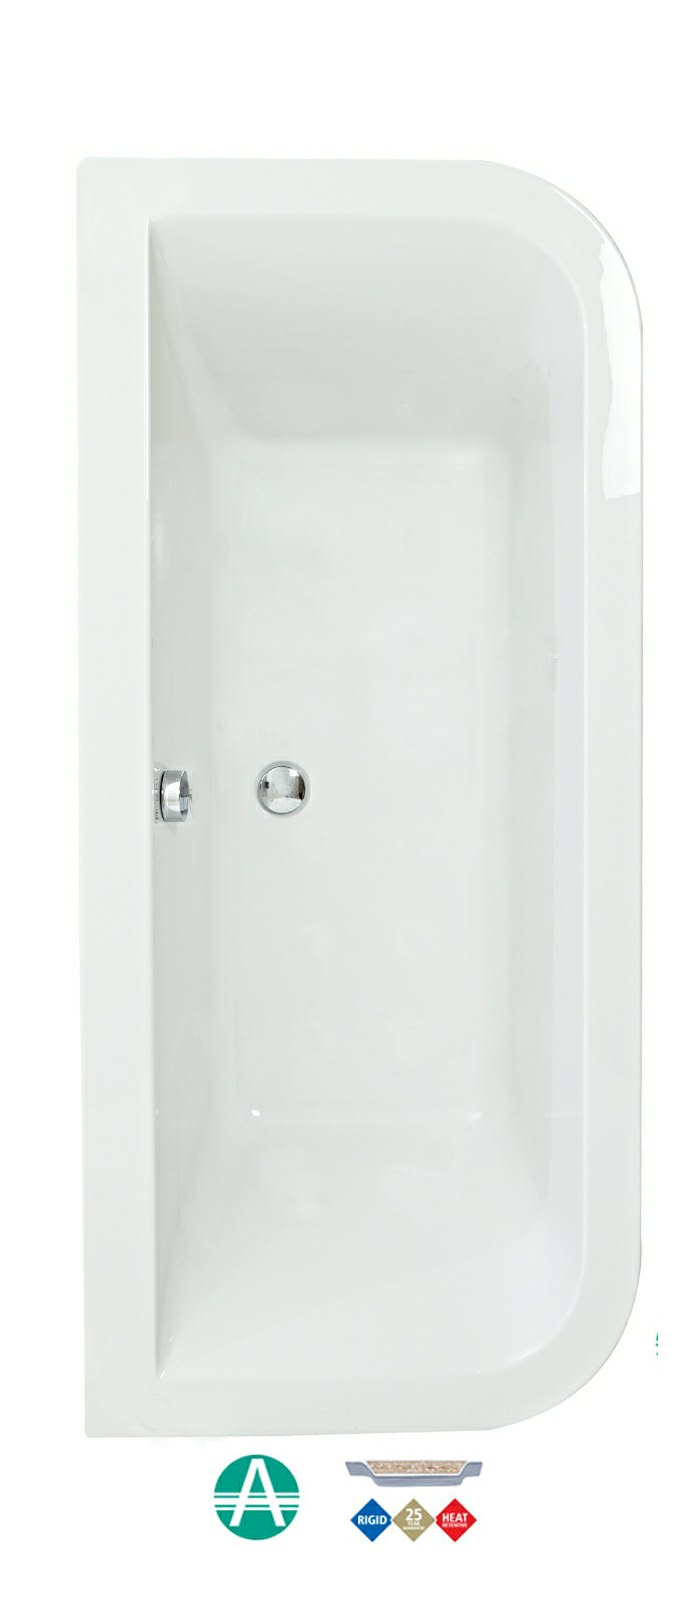 Phoenix Sima Amanzonite 1700 X 750 Double Ended Bath With